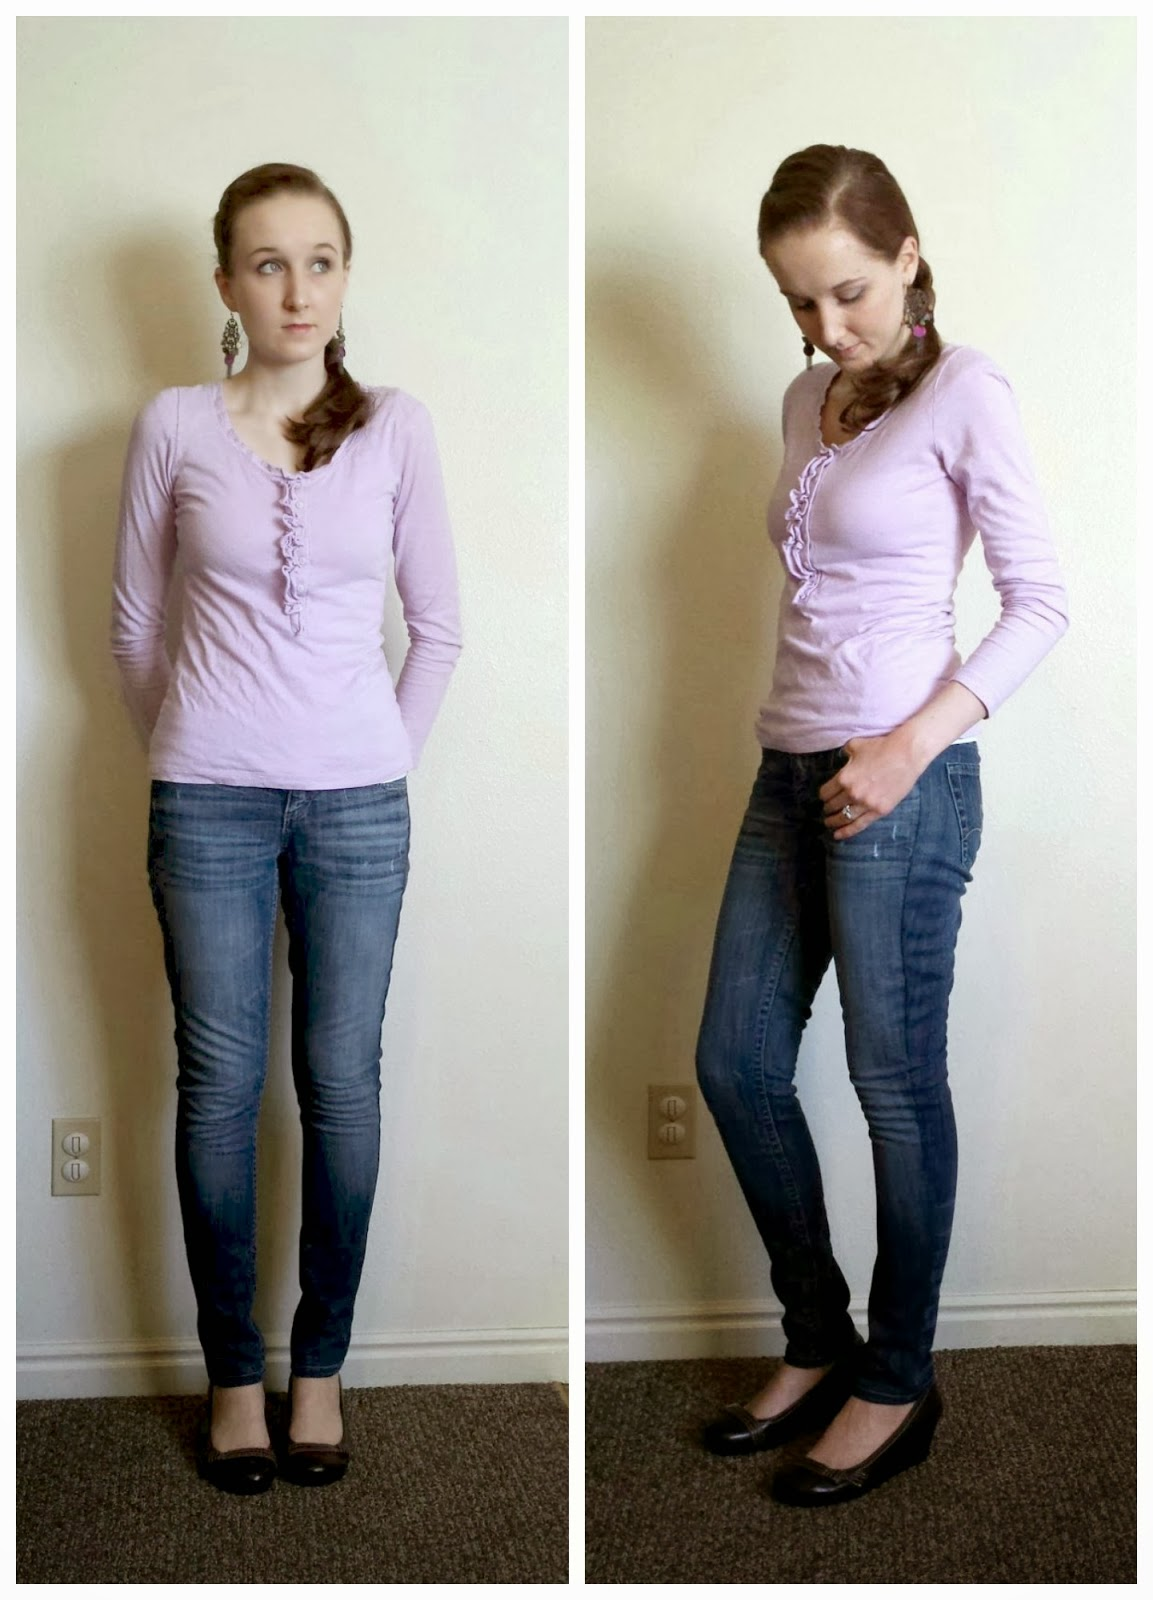 skinny jean refashion, flare to skinny jeans, pants refashion, diy skinny jeans, skinny jeans tutorial